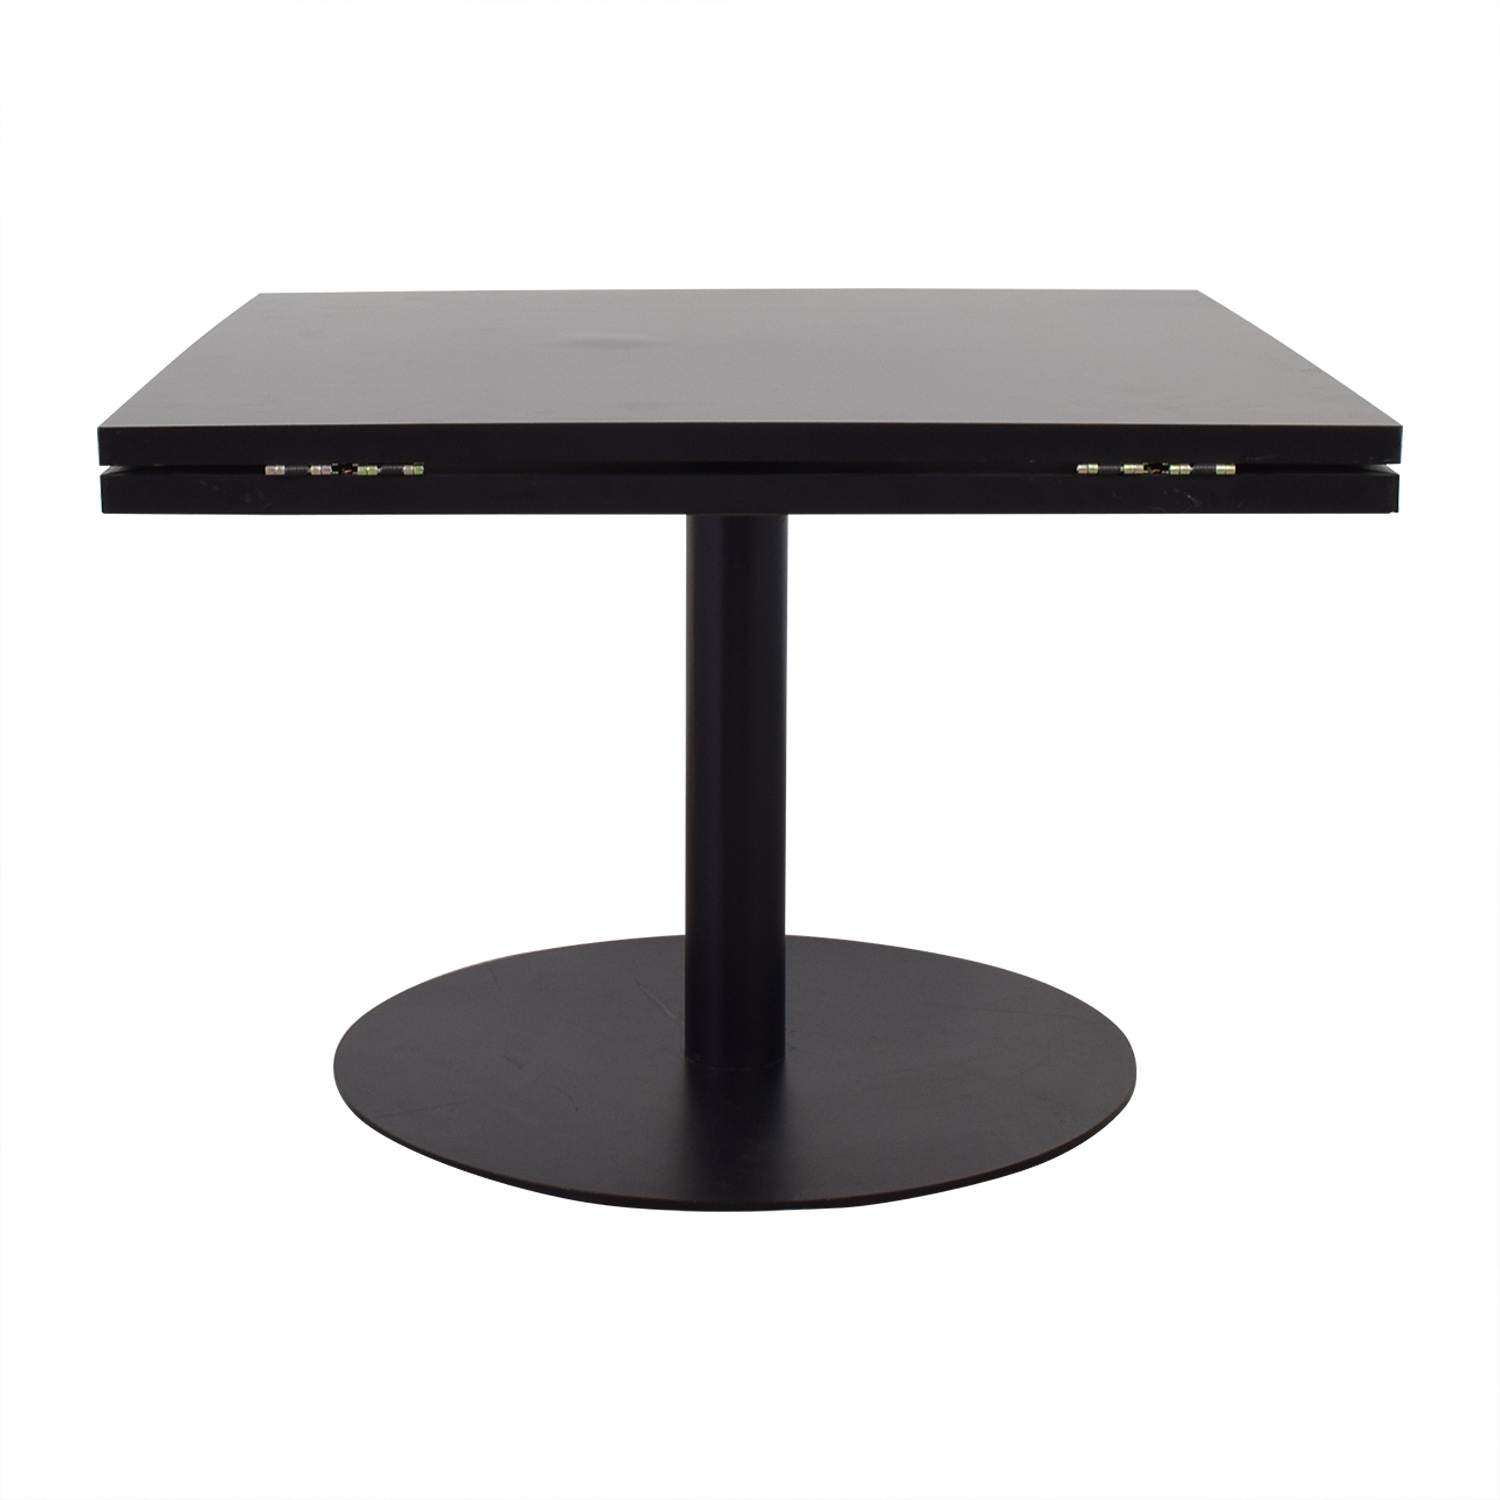 buy Black Square to Round Foldable Sides Table